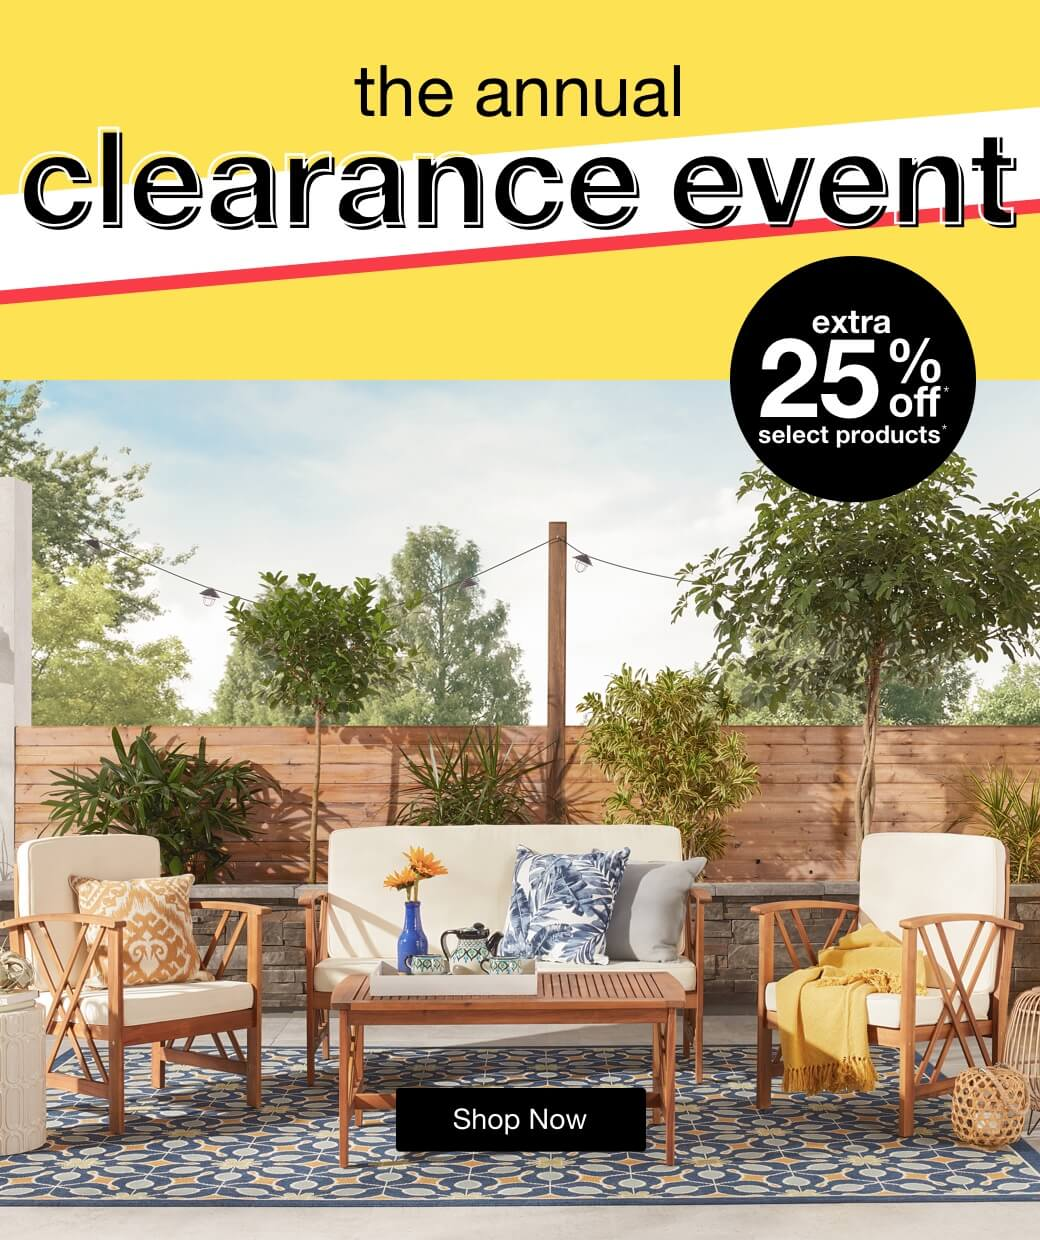 The Annual Clearance Event